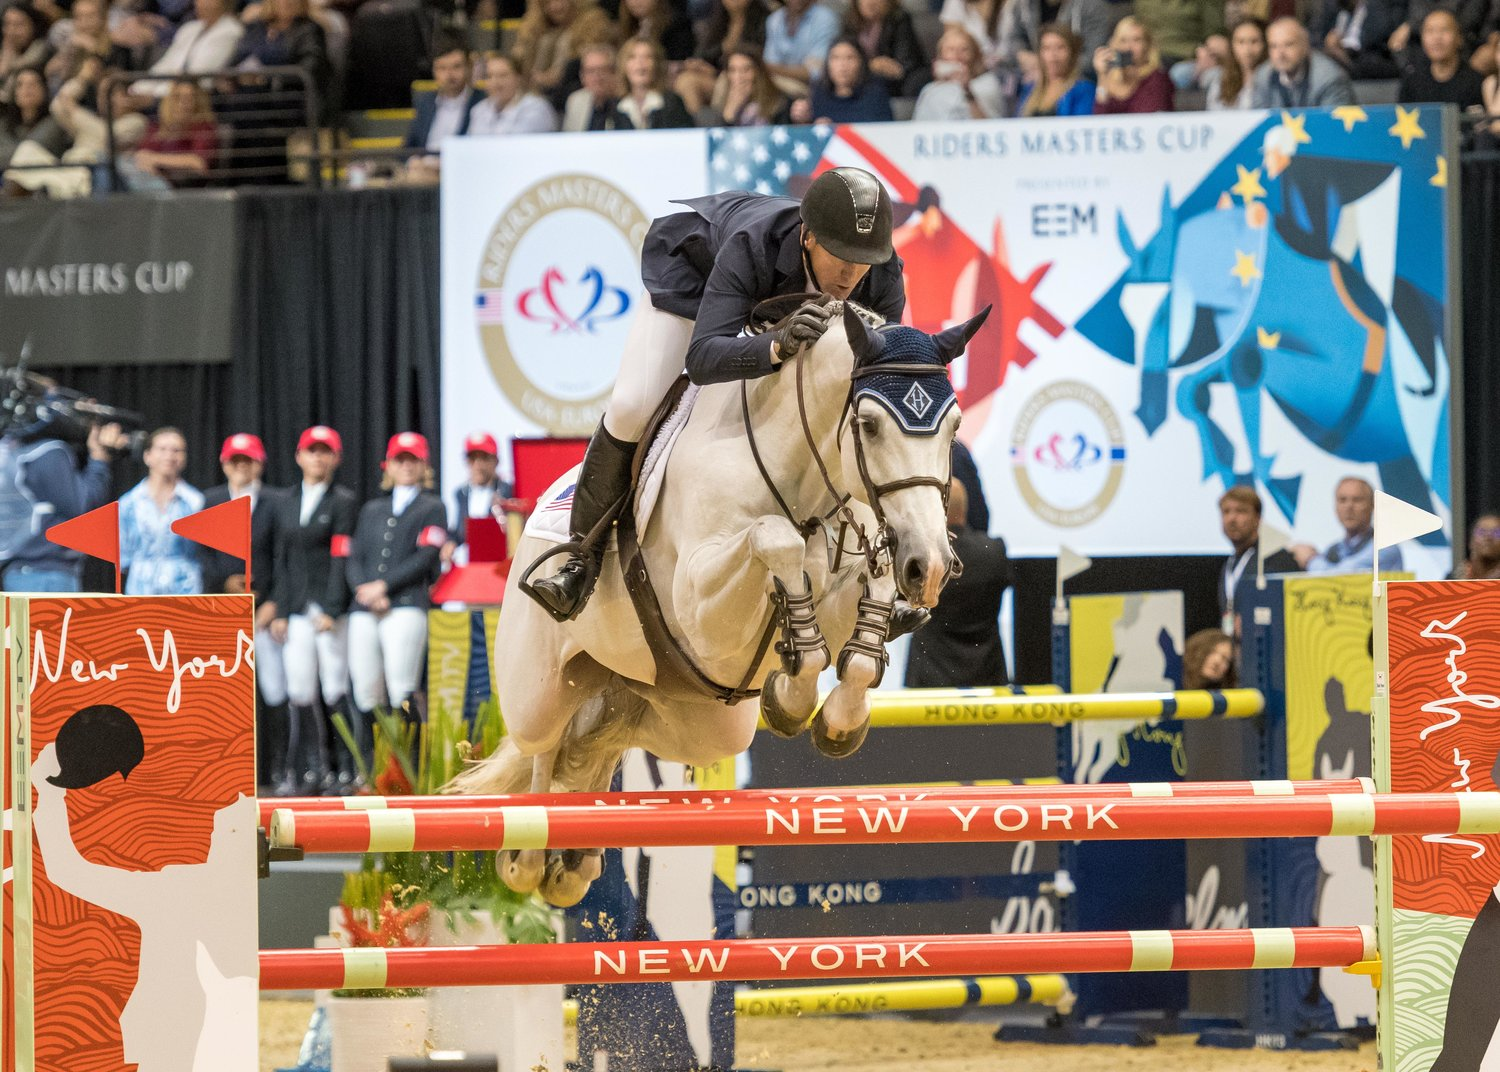 Olympic Gold Medalist McLain Ward displays his medal winning form.